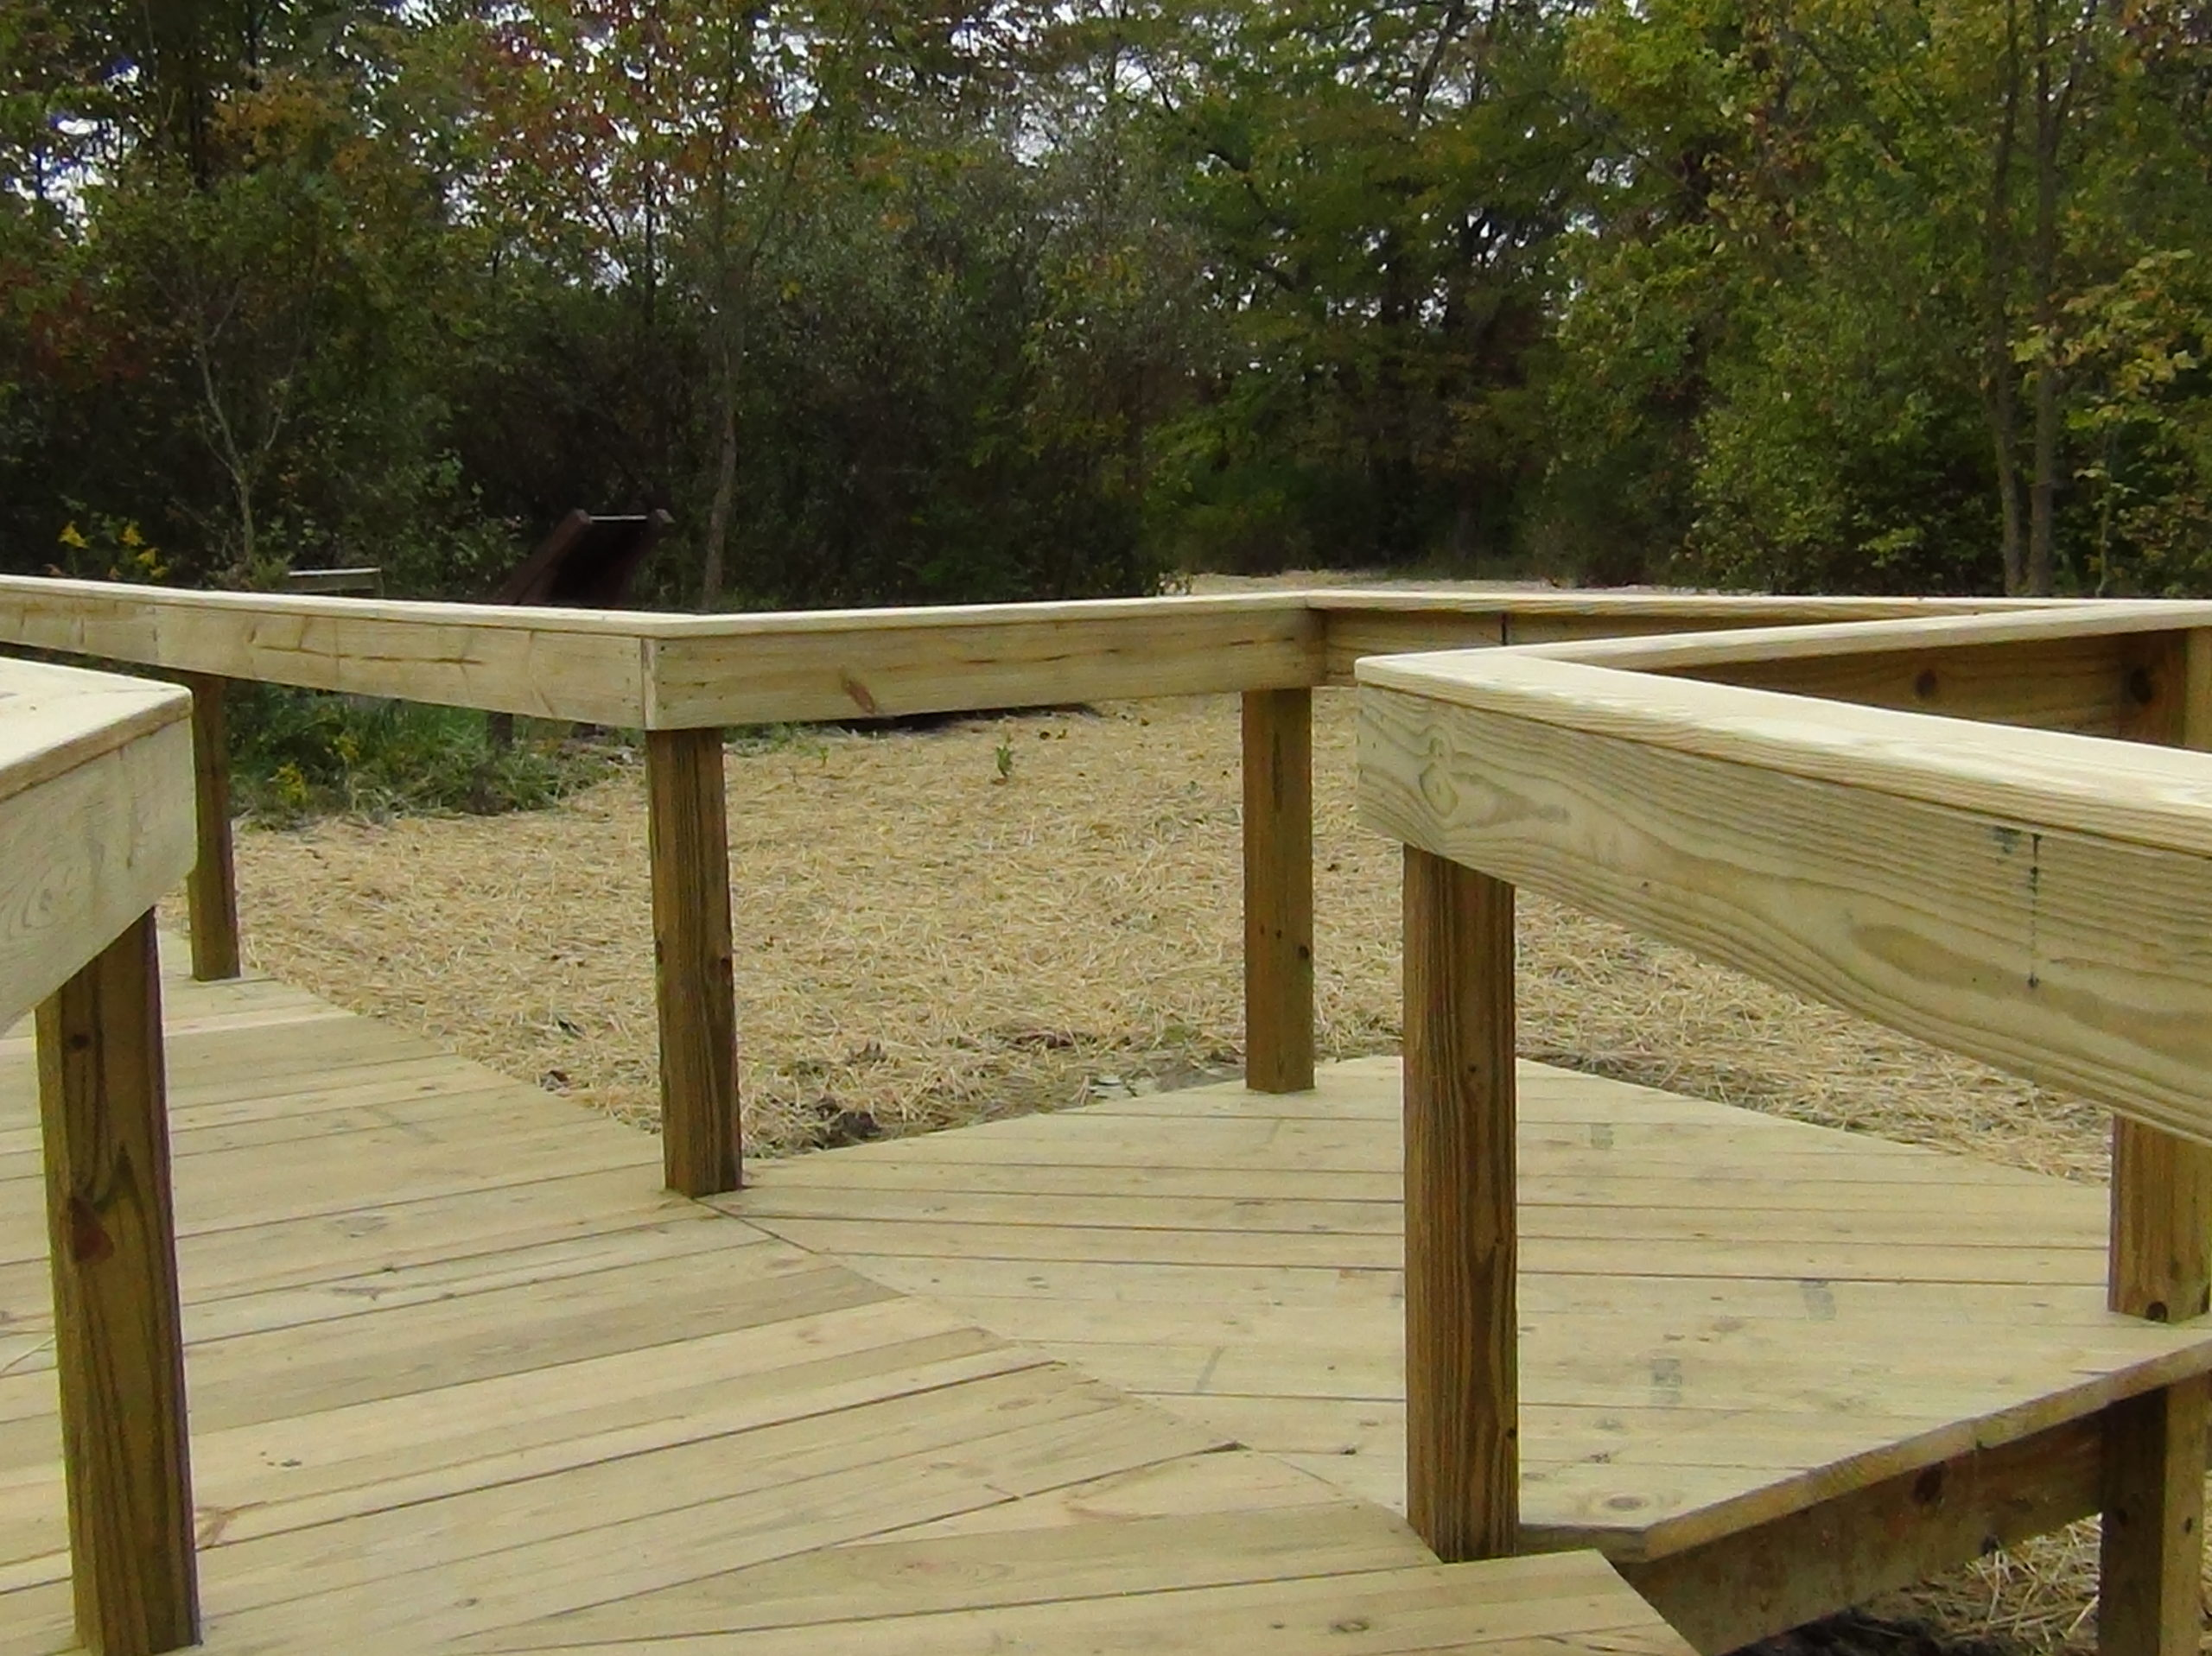 Wooden plank board walk, with hand rails. This board walk is atop the area that will be the wetland that is covered in straw.